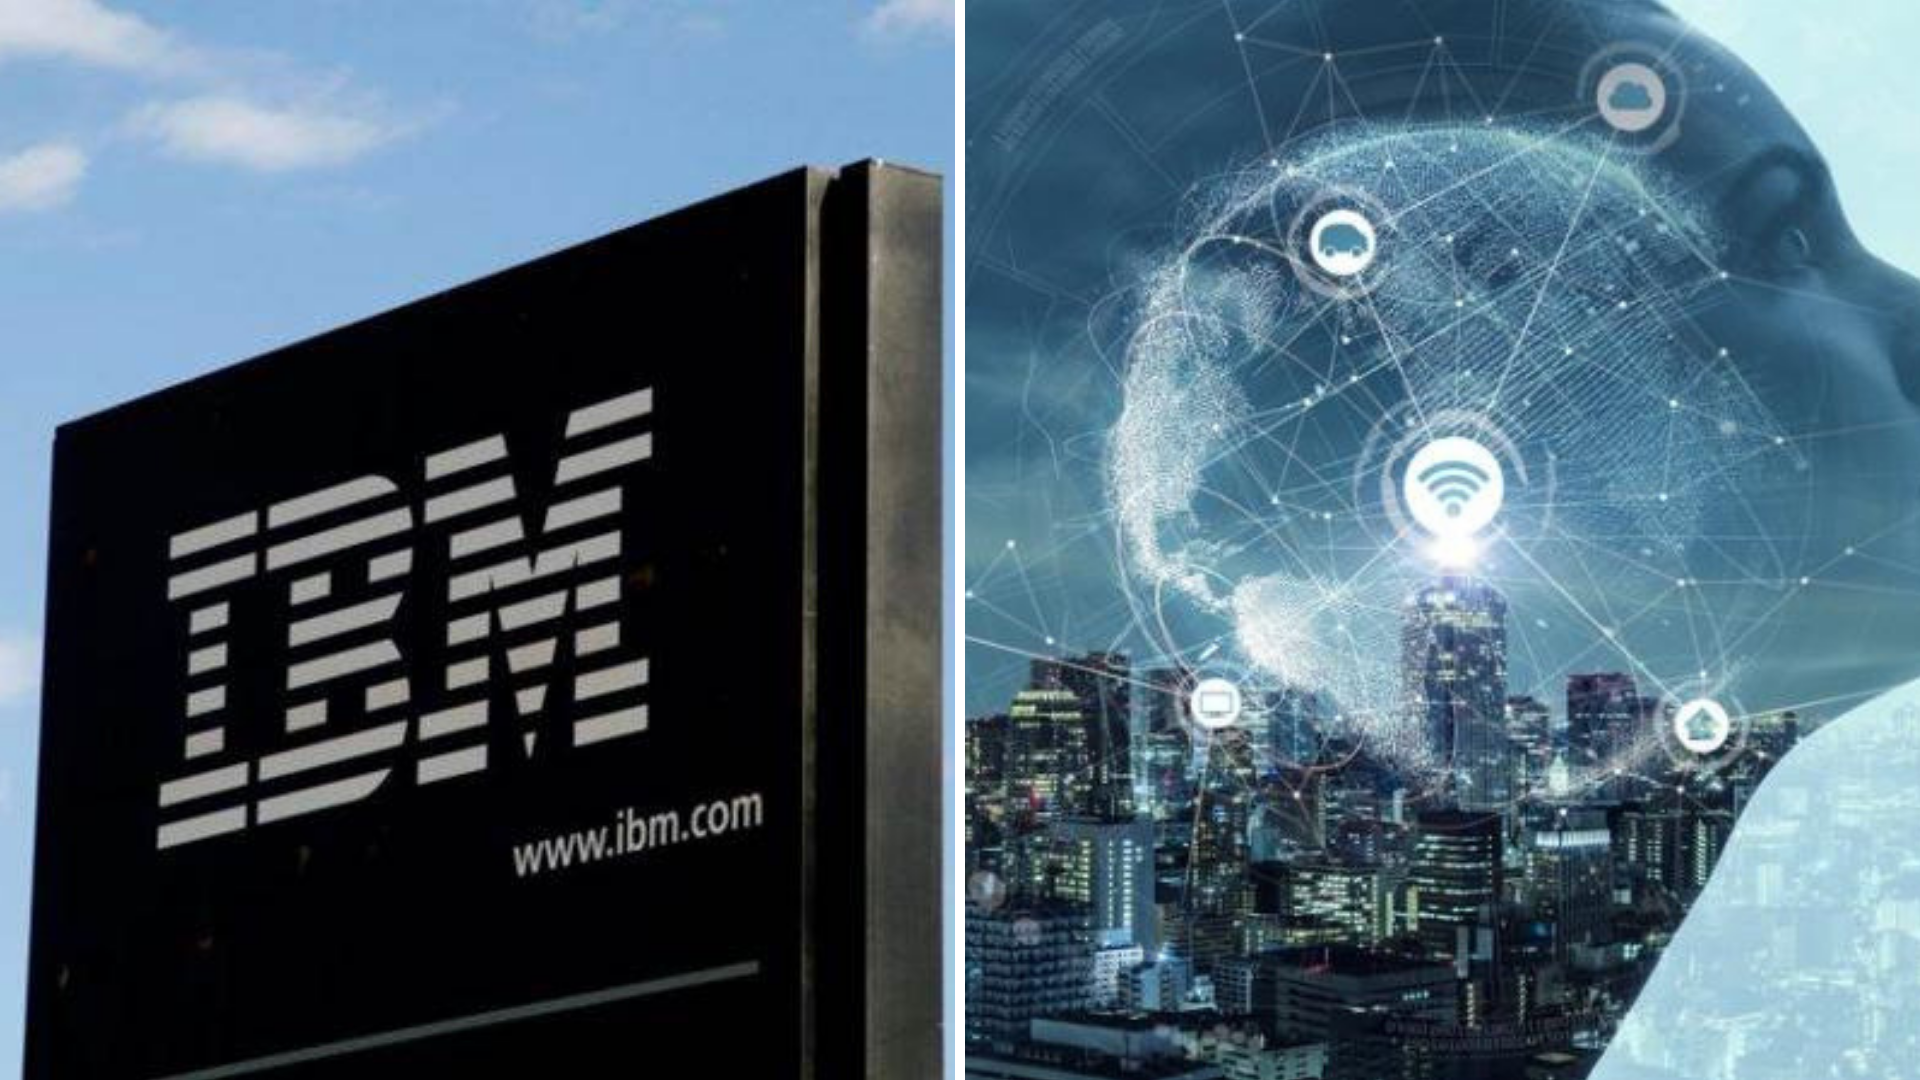 AI and IBM